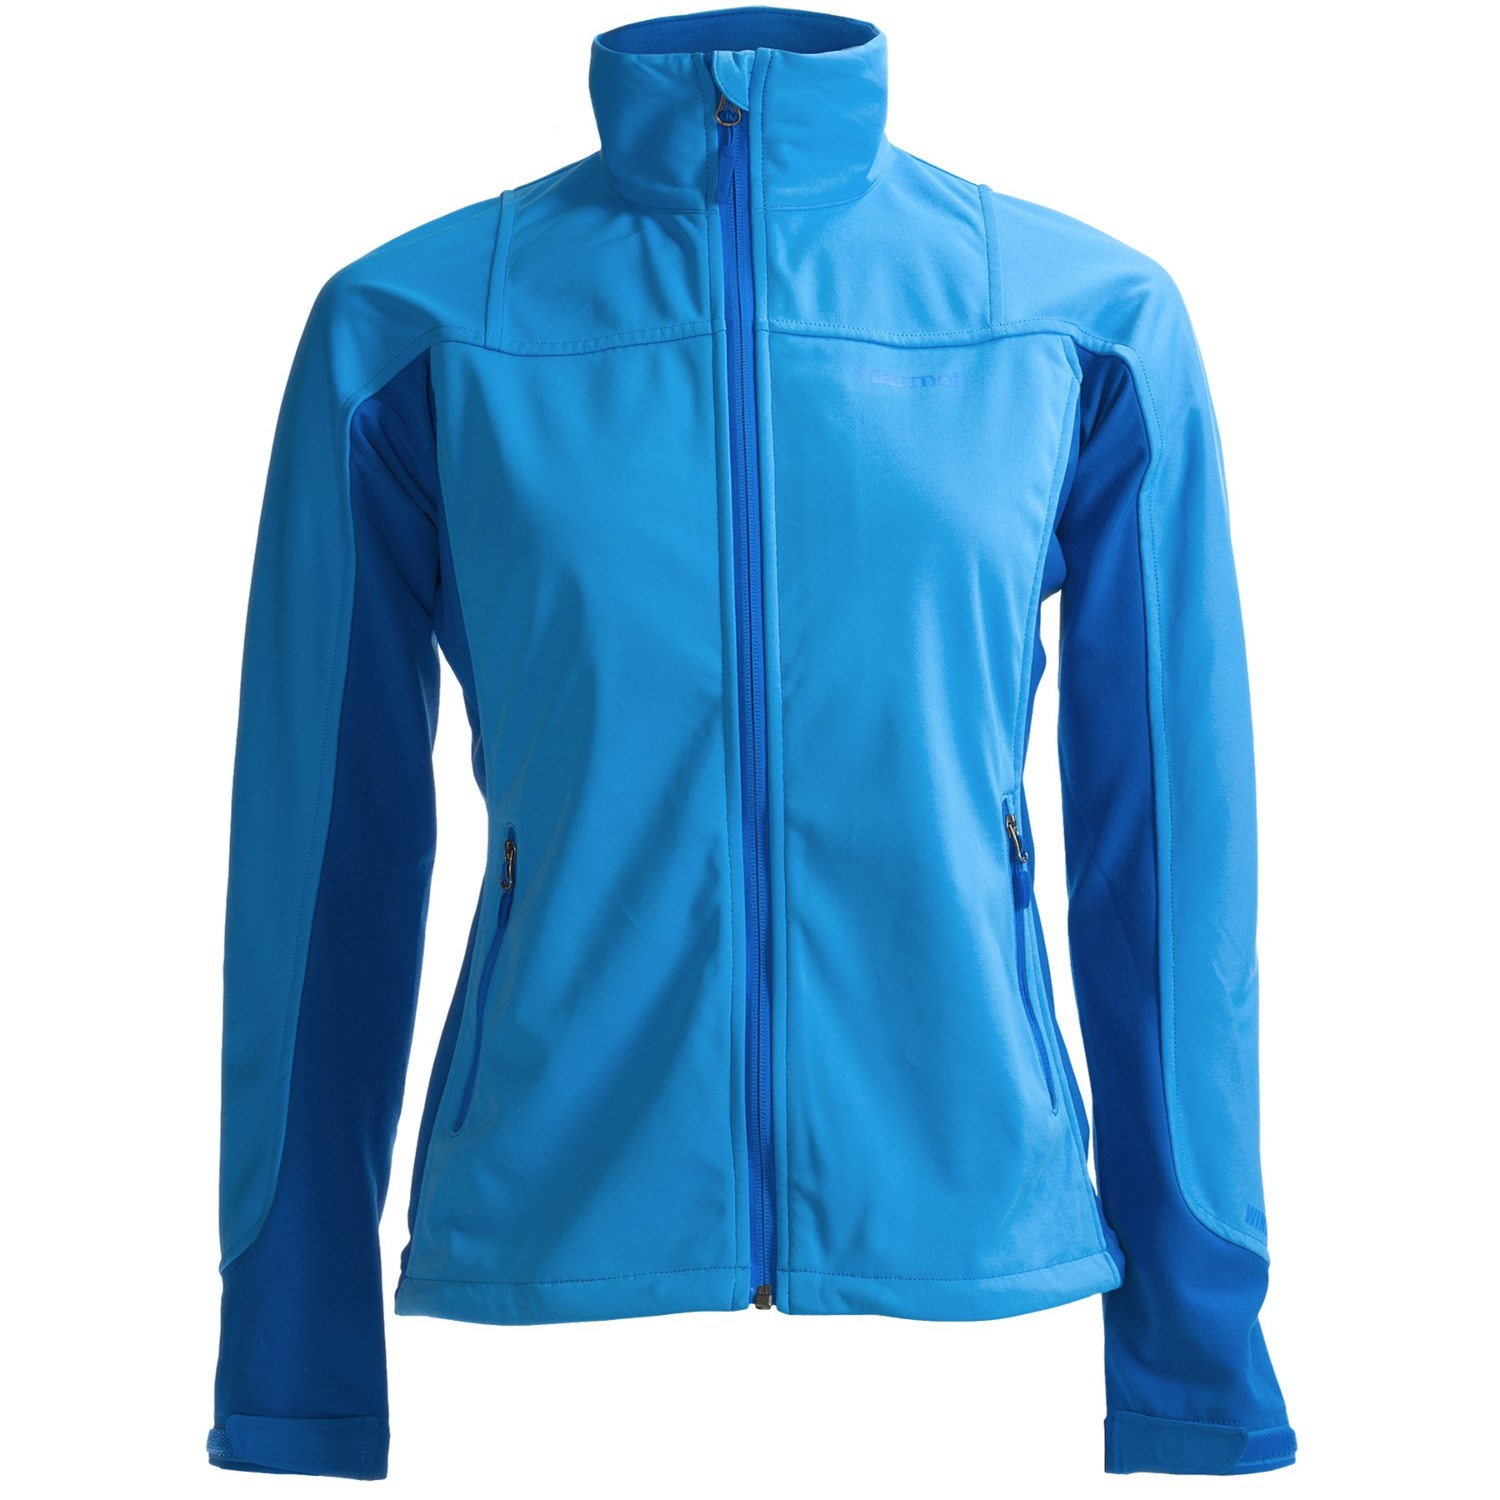 Alimed Warm-Up Jacket Ceil Blue Large Long Sleeve Waist Length Discount